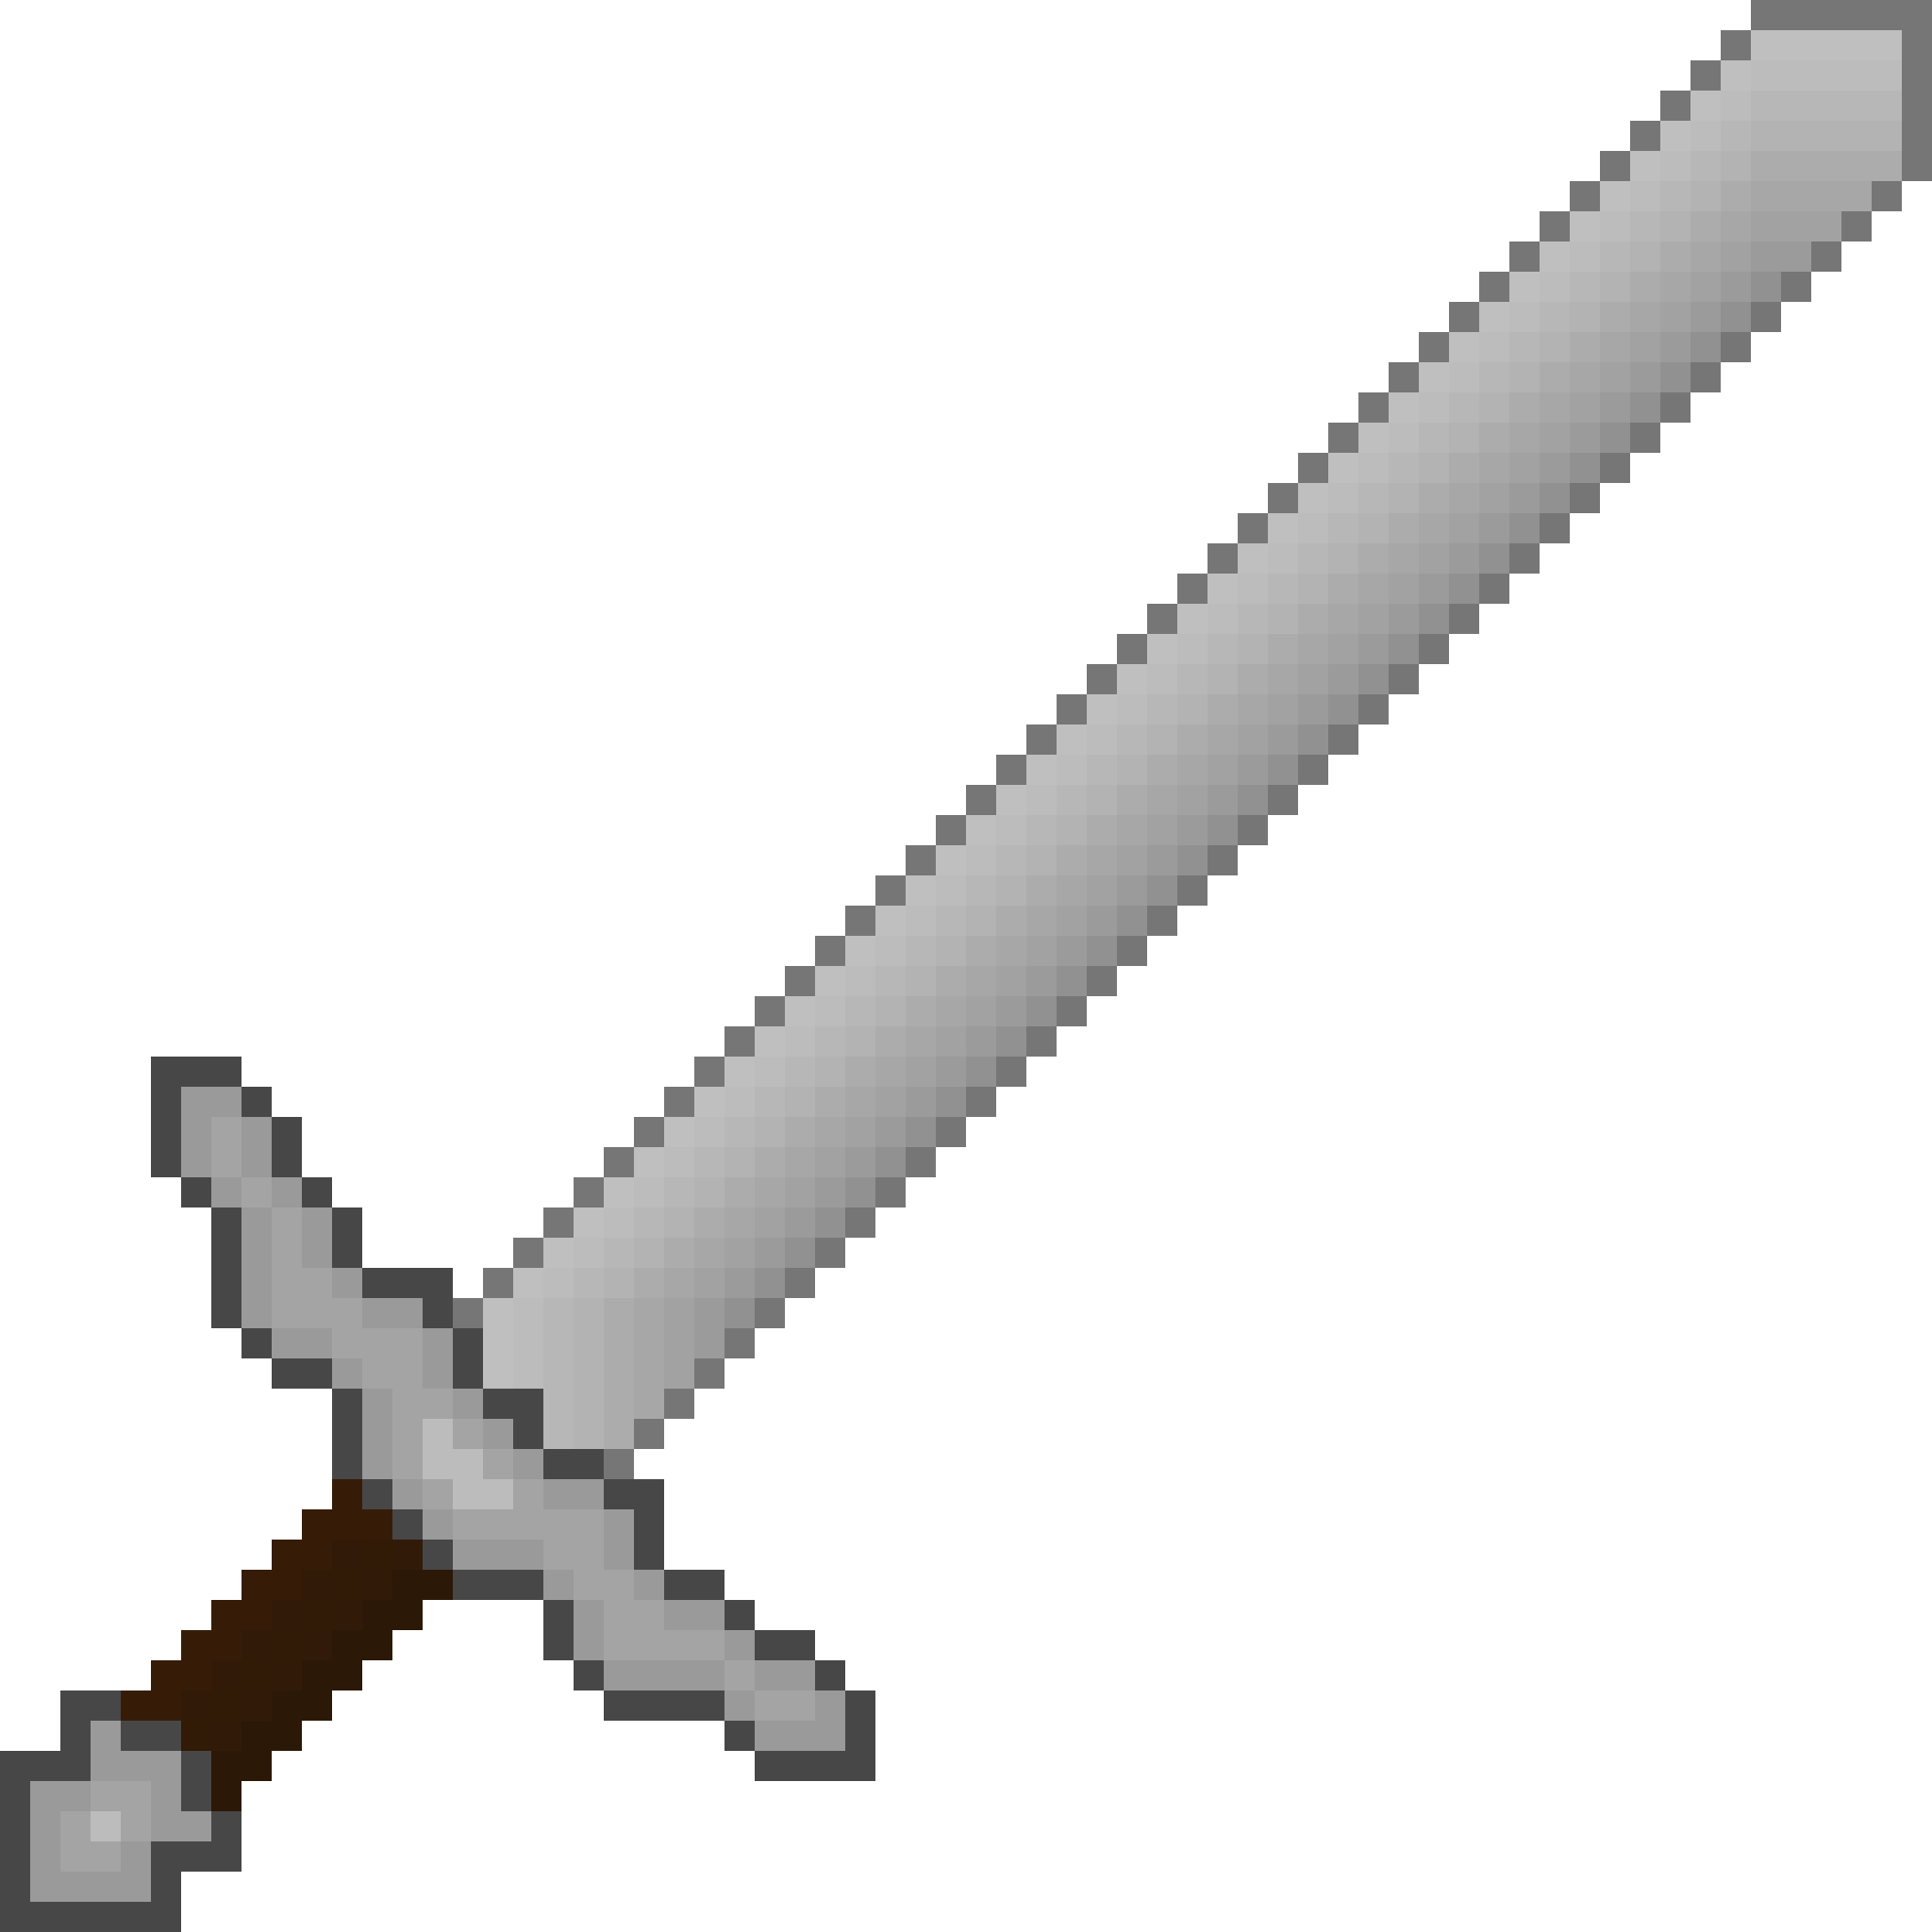 Minecraft swords texture png. How s this for